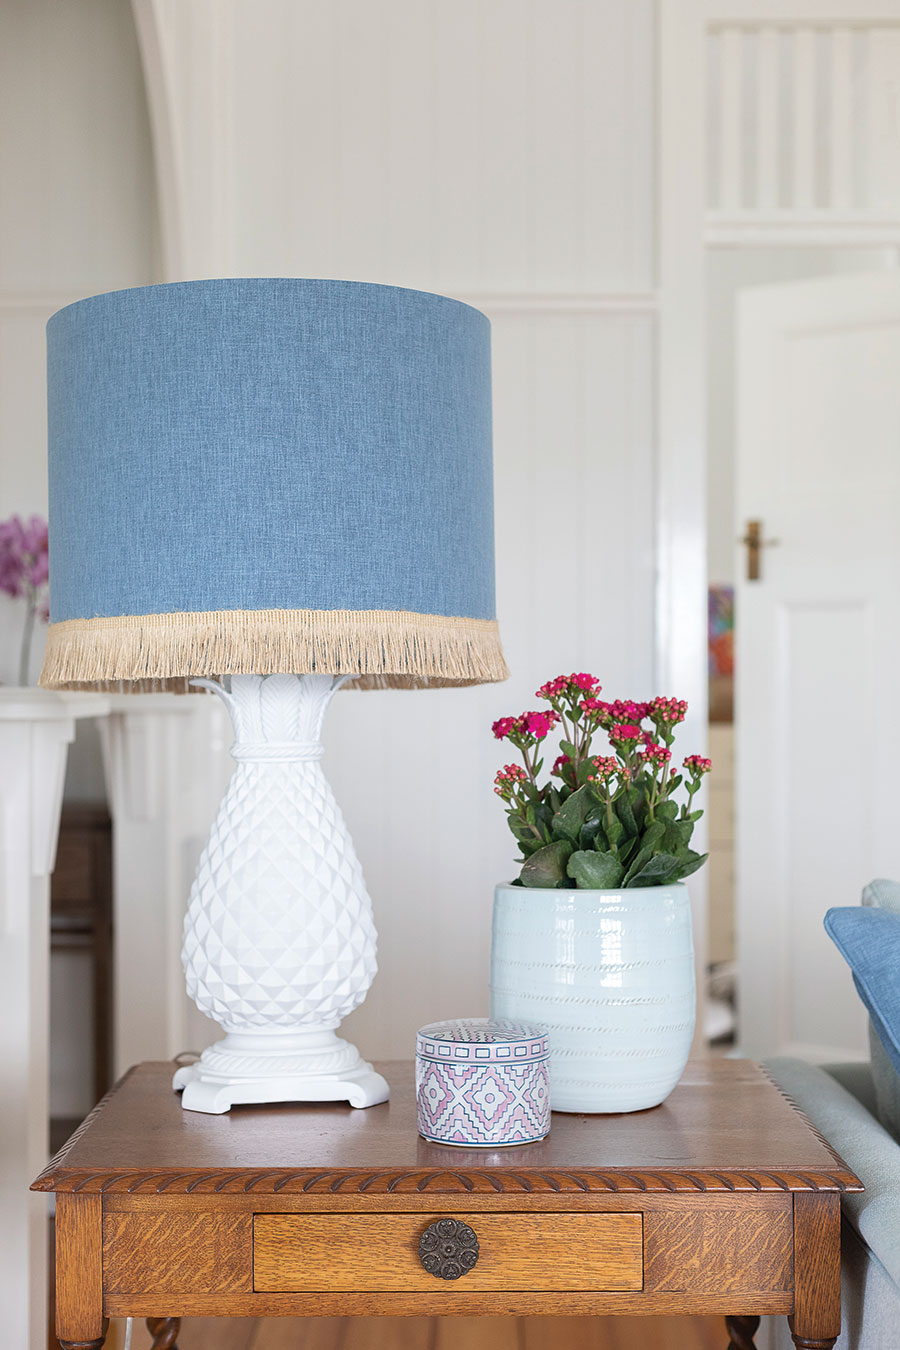 Rylo Co. lampshade